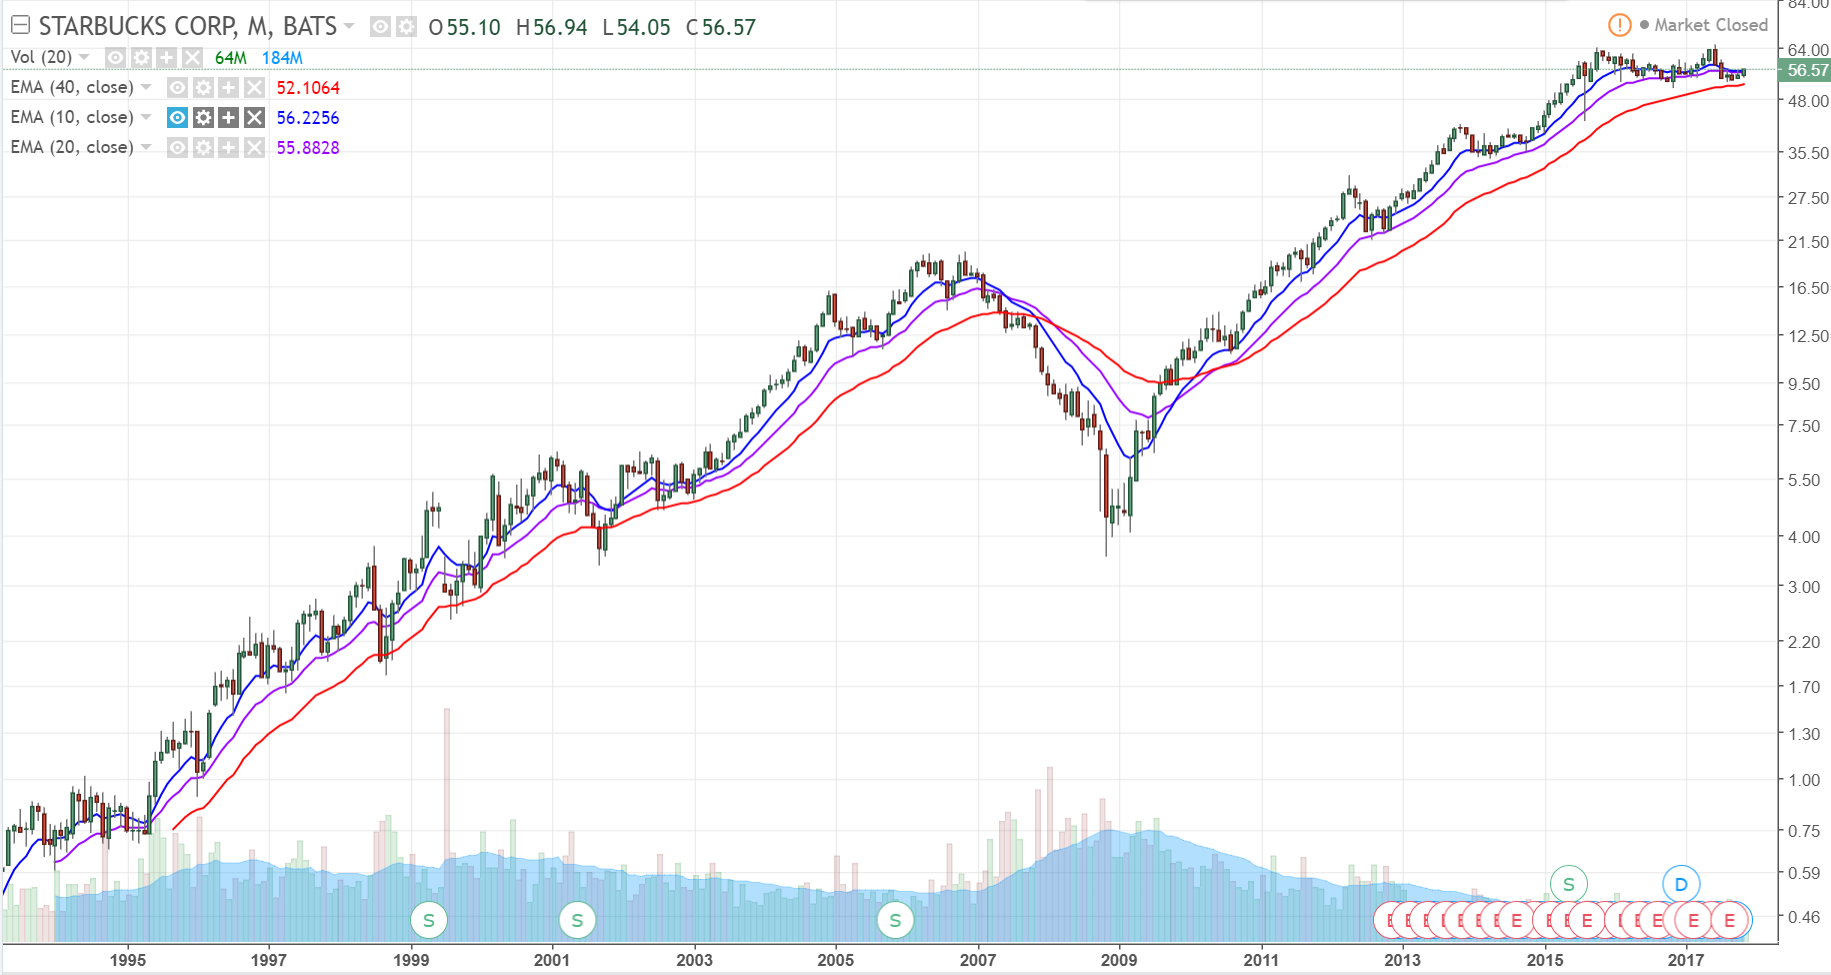 Comprehensive Stock Analysis Of Starbucks Corporation (SBUX)